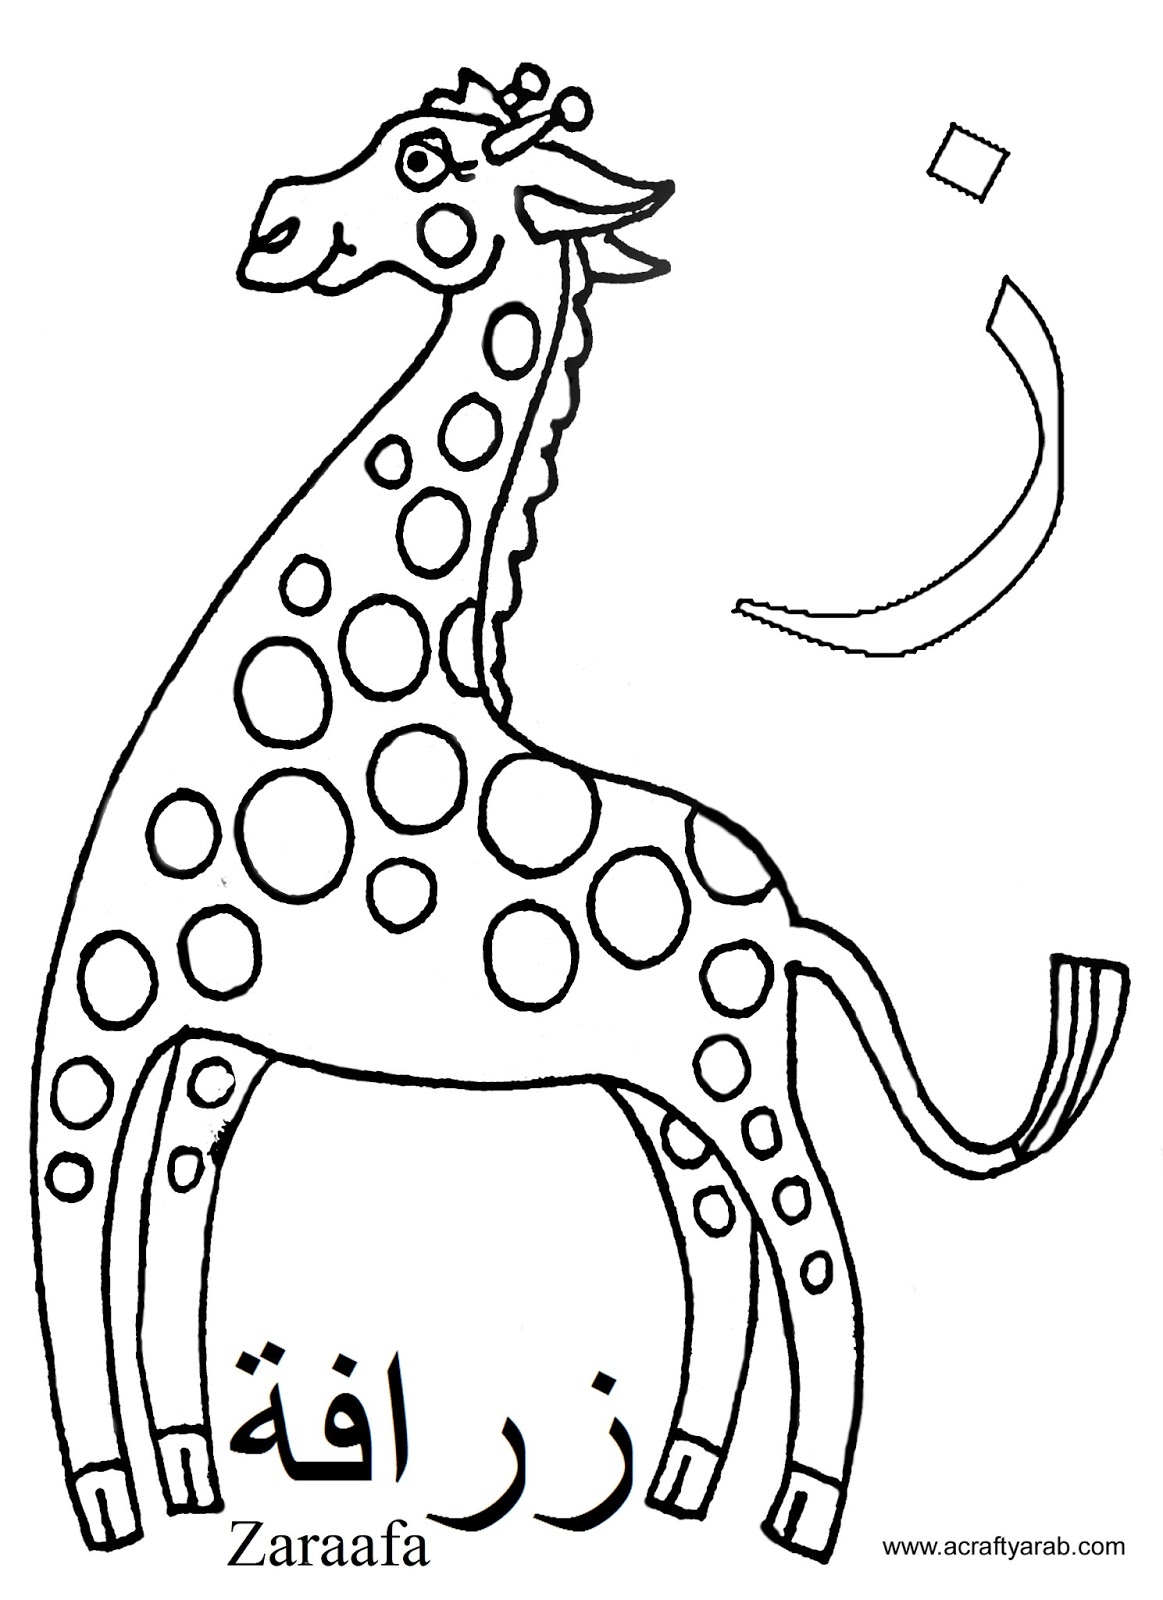 Coloring Pages Arabic Alphabet : A crafty arab arabic alphabet coloring pages zayn is